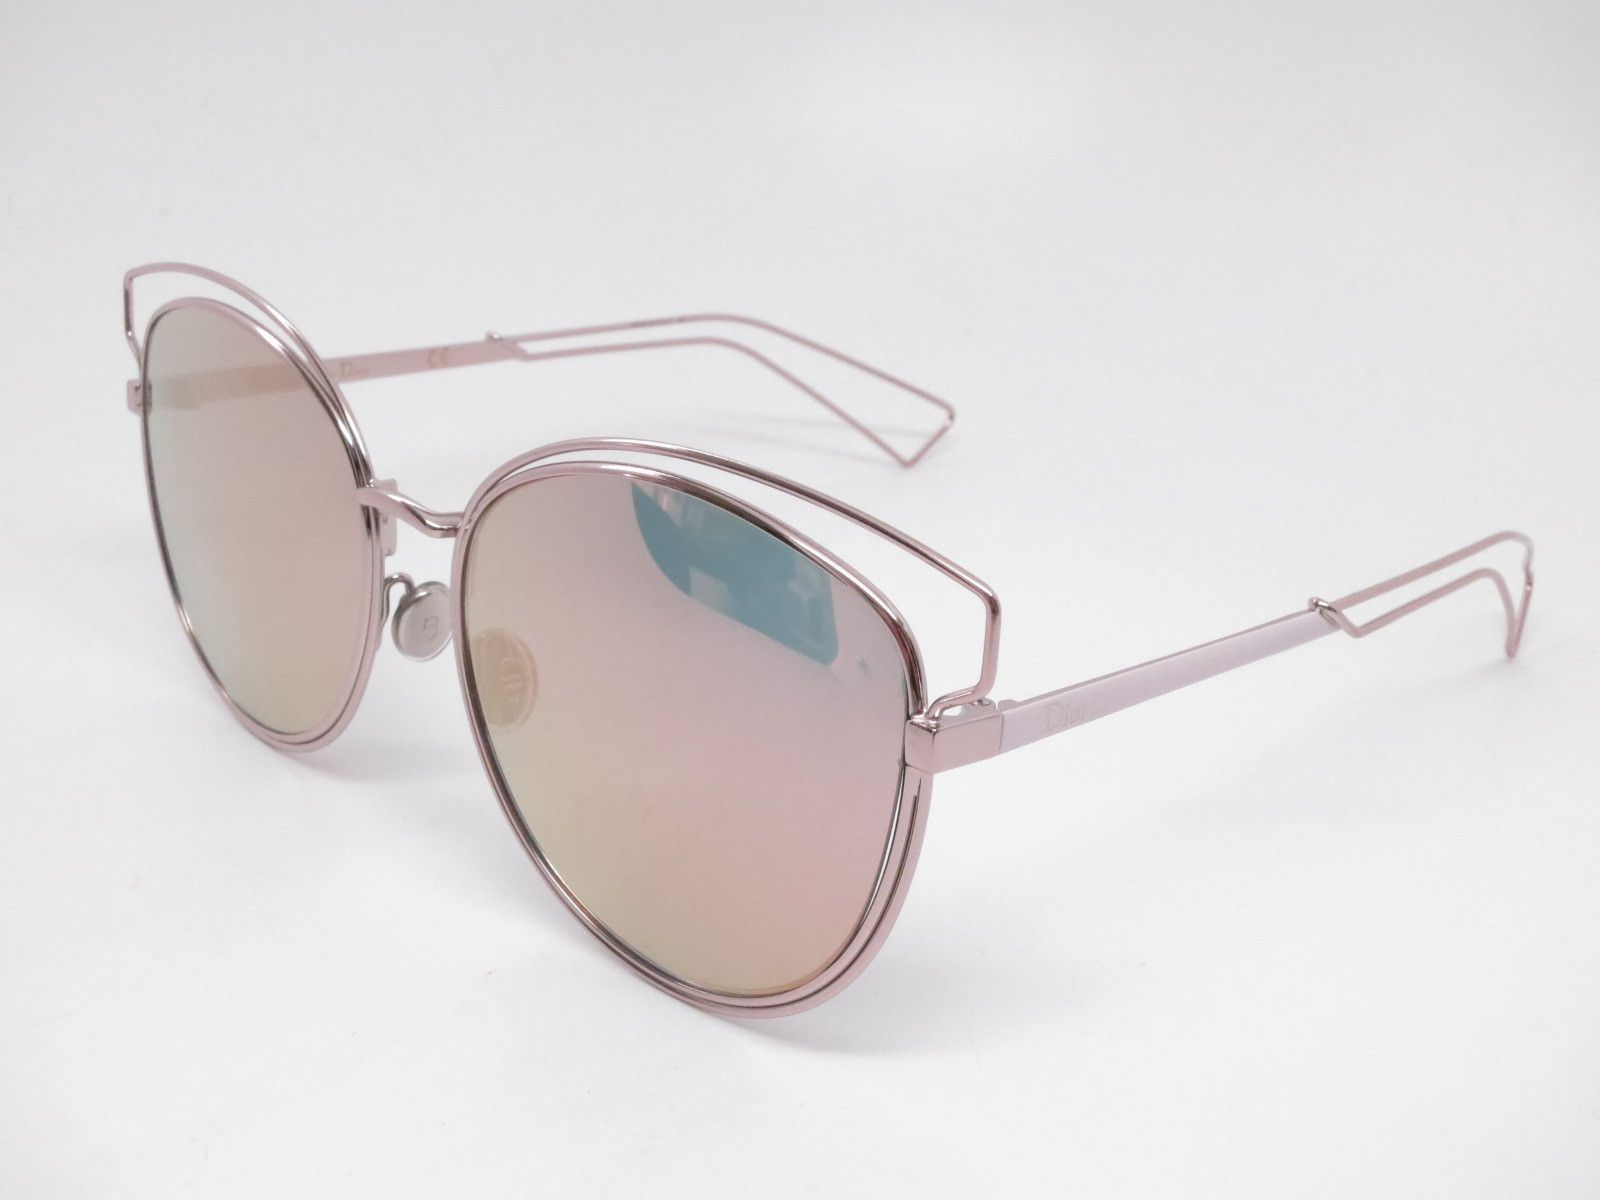 5be19c783445f3 Dior Sideral 2 JA00J Pink w/Gray Rose Gold Sunglasses ...